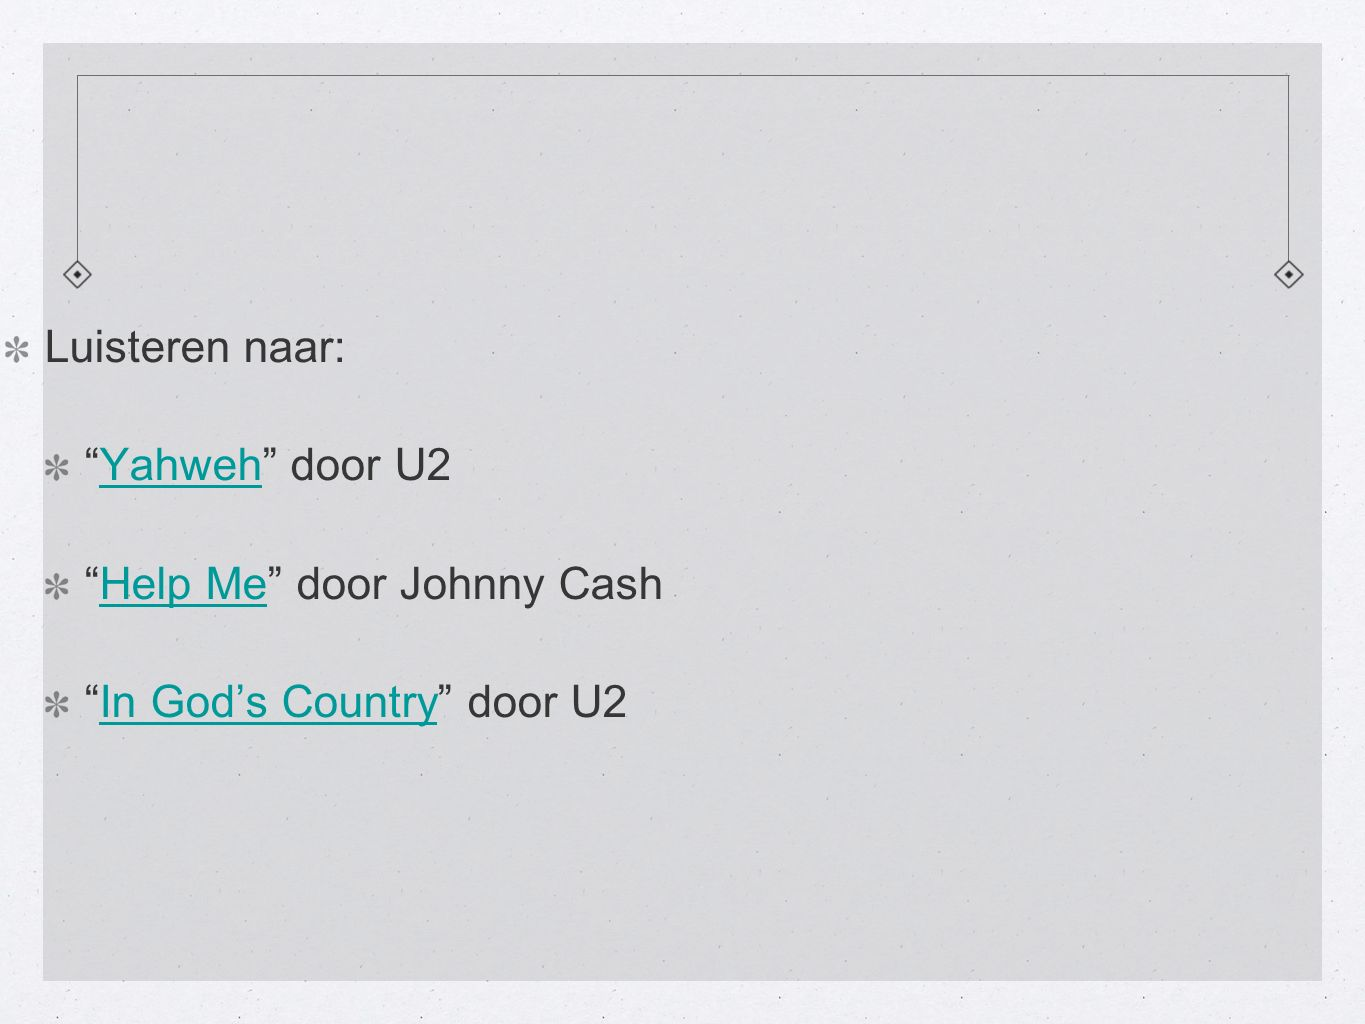 Luisteren naar: Yahweh door U2Yahweh Help Me door Johnny CashHelp Me In God's Country door U2In God's Country